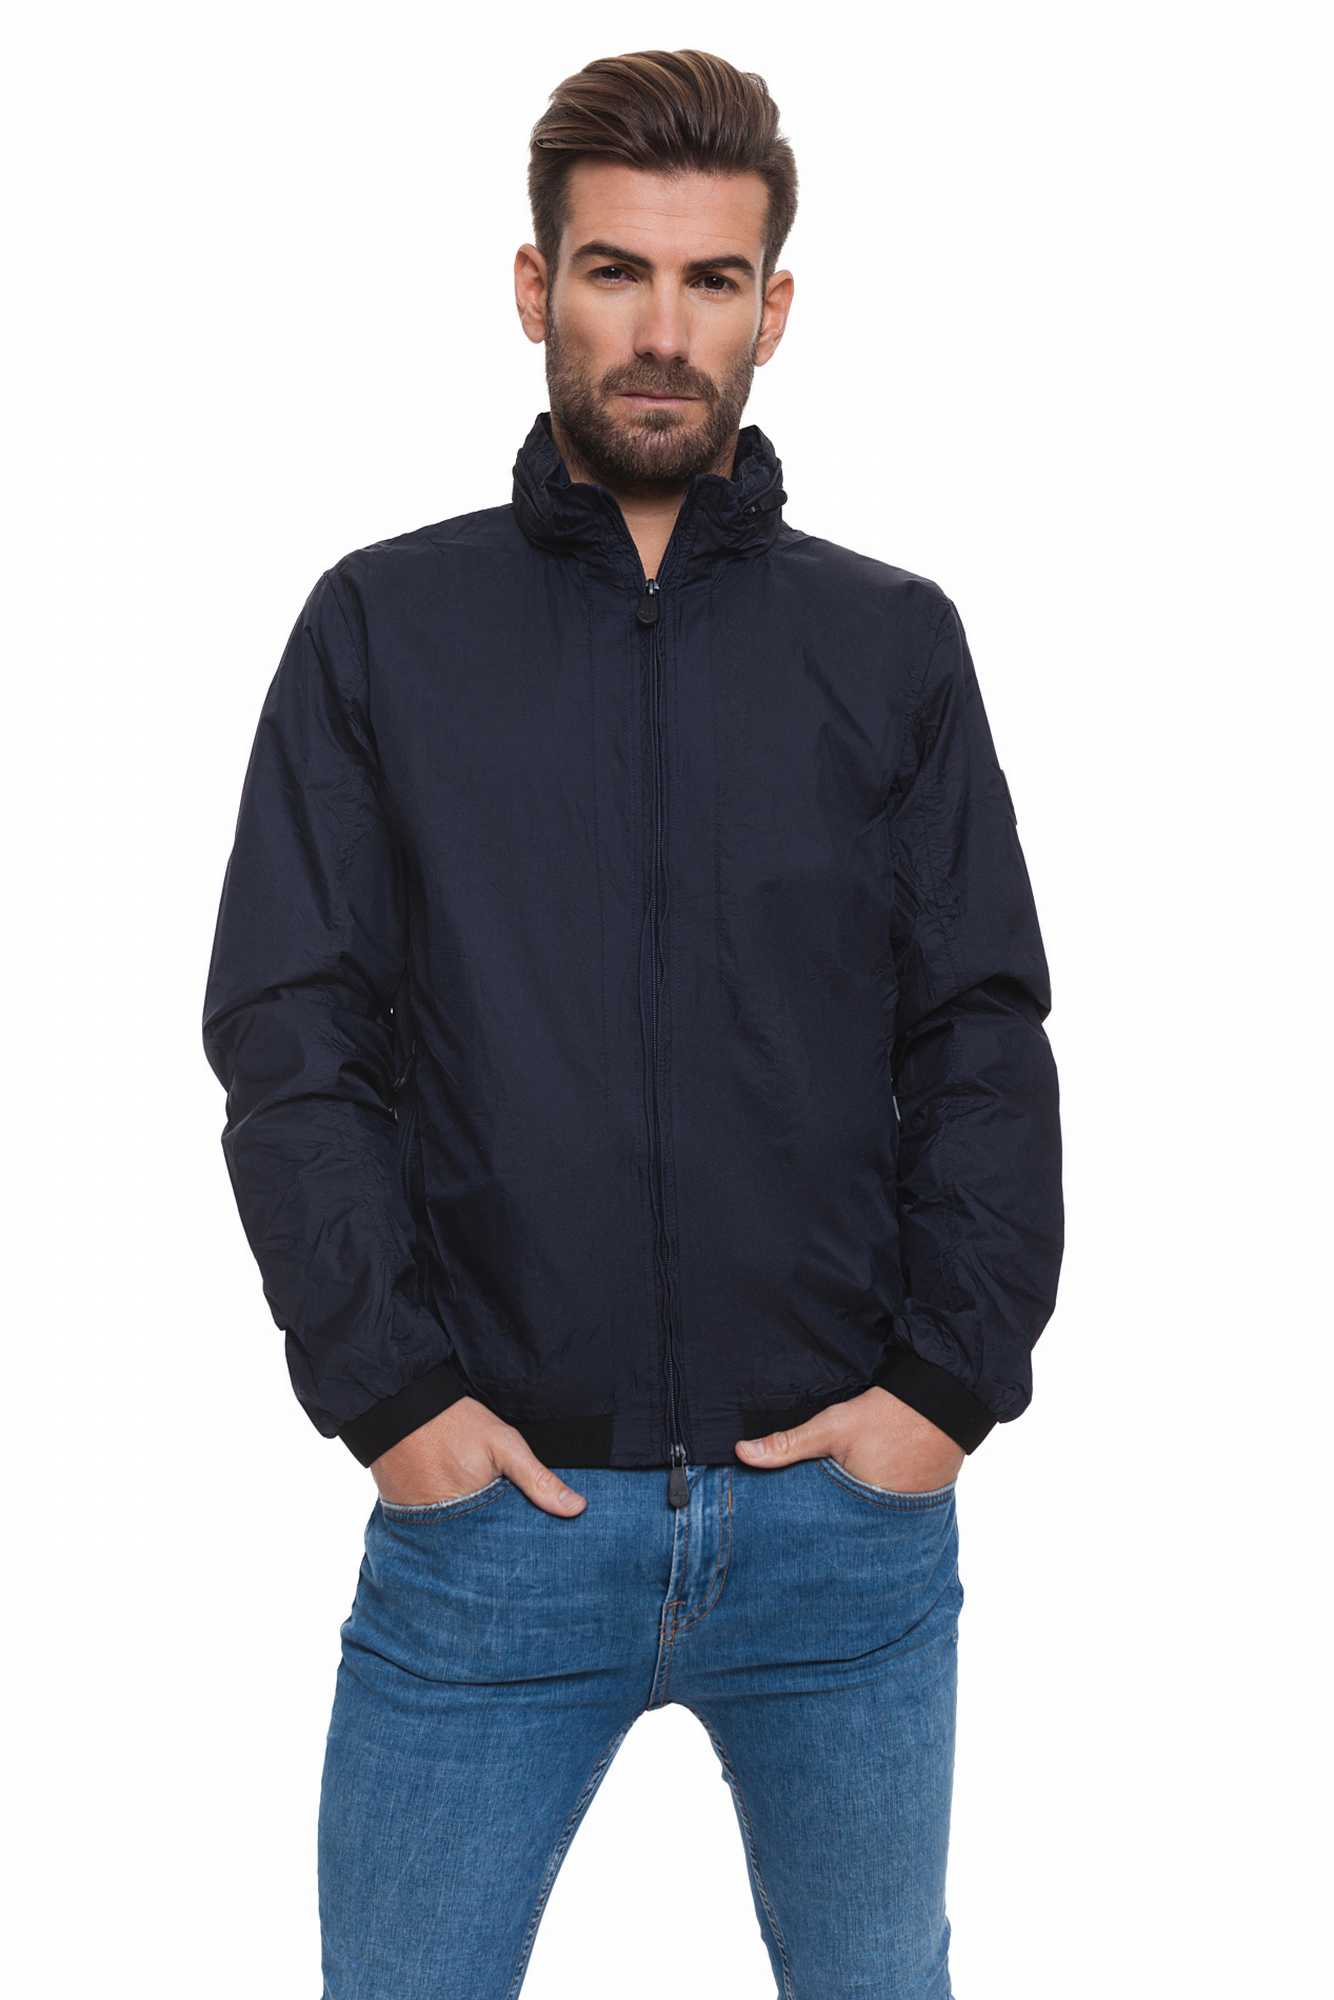 Born Rich Jacket For Men Brazier With Hoodie And Zipper Length Dark Blue Causal BR2K111095AA2BRC-3